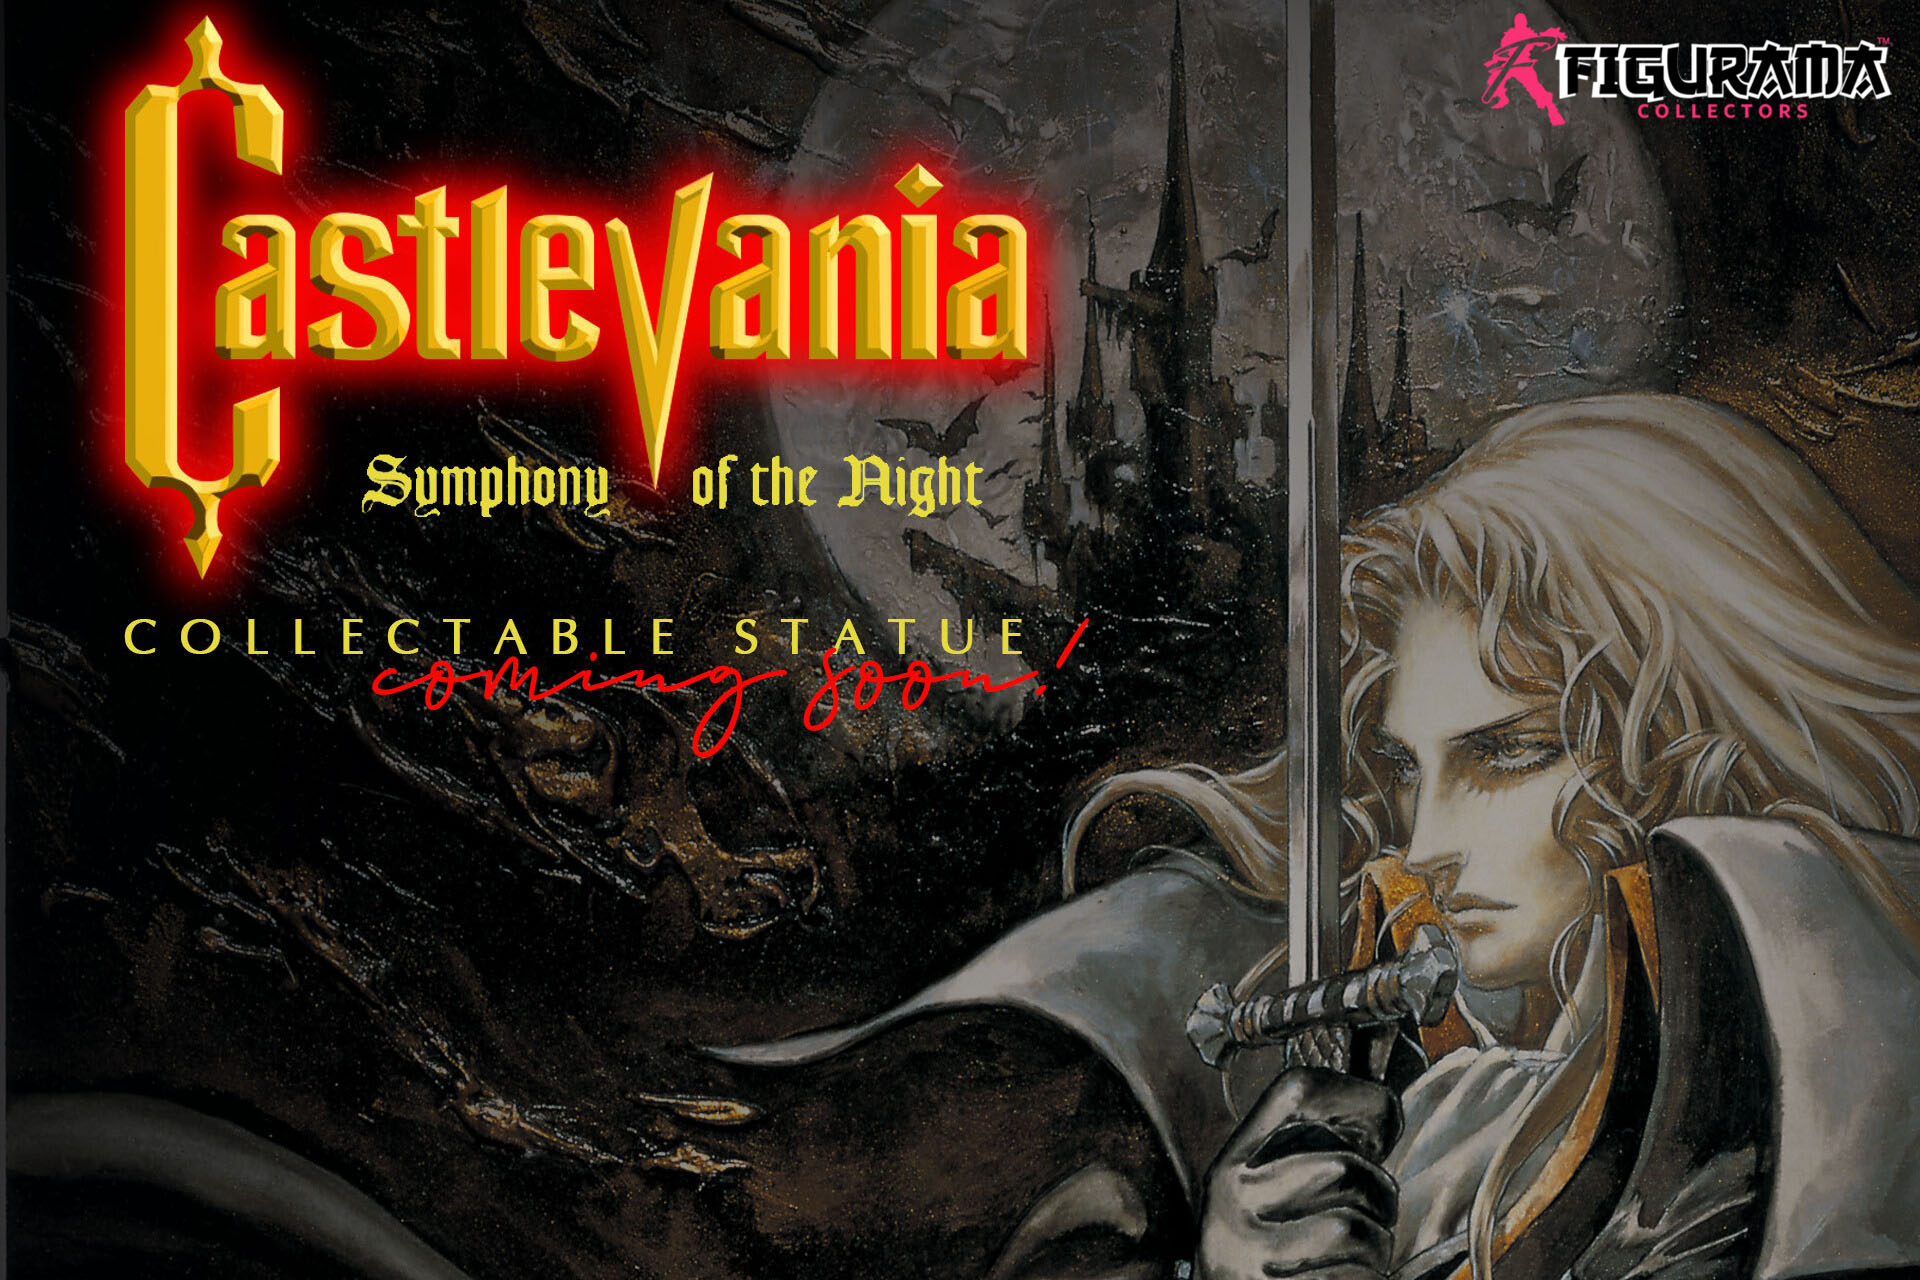 Figurama Announces License and Upcoming Statue for Castlevania: Symphony of the Night